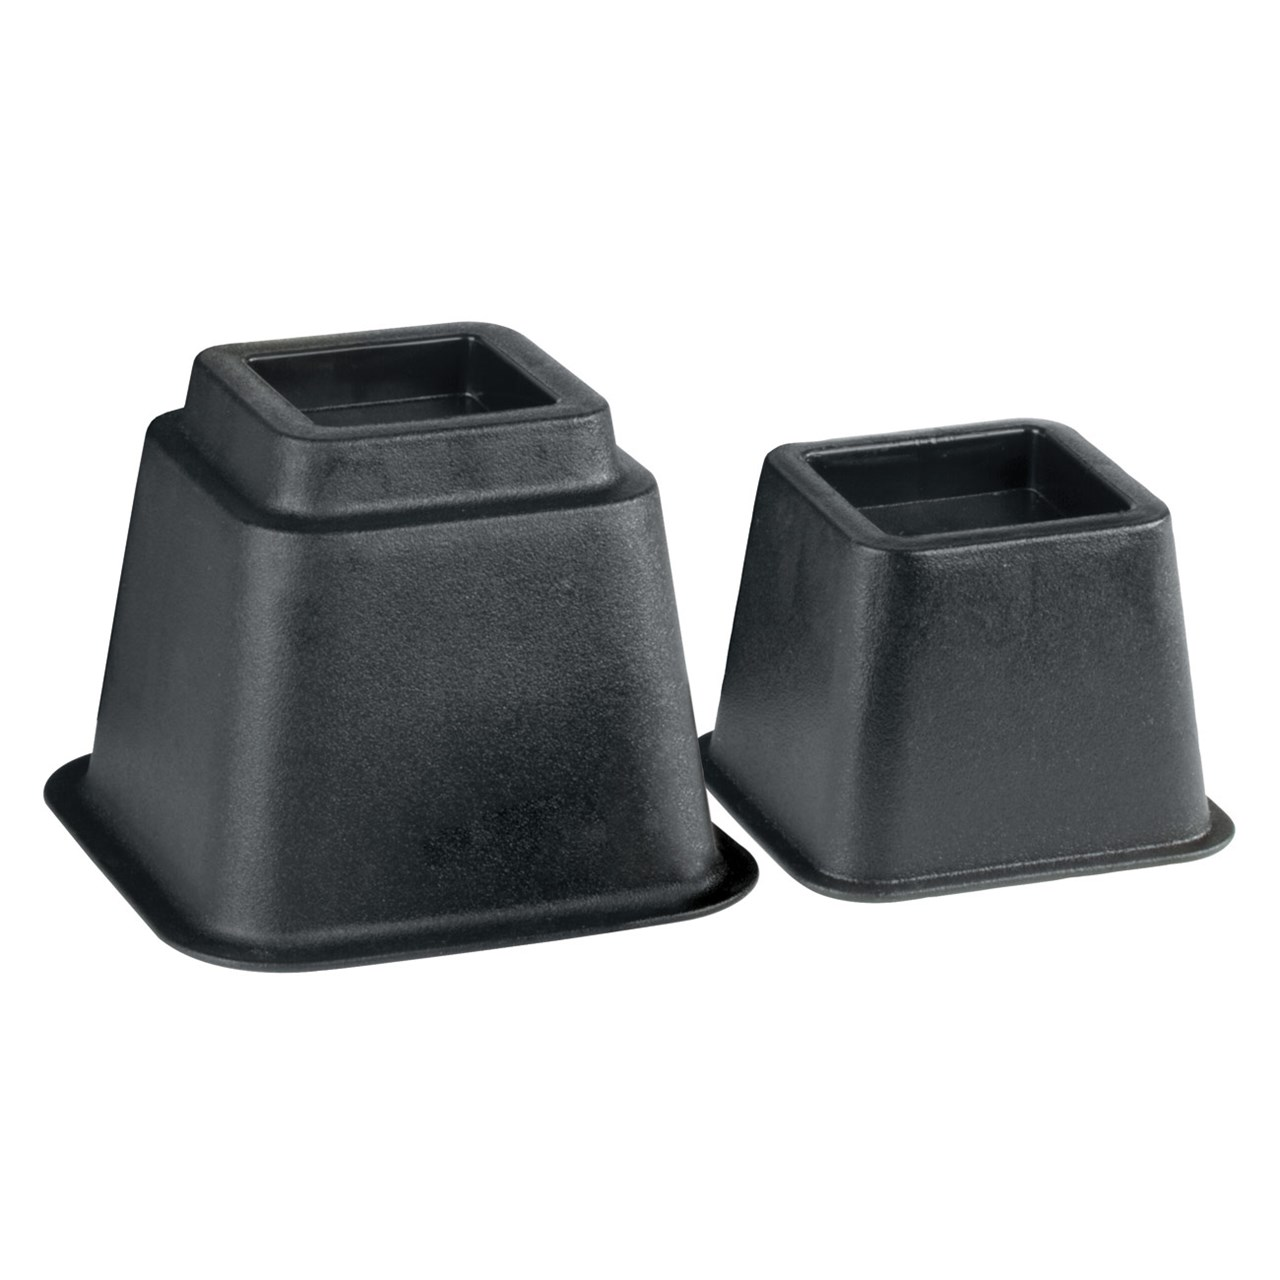 Bed And Chair Risers   One Pair   6 Inch